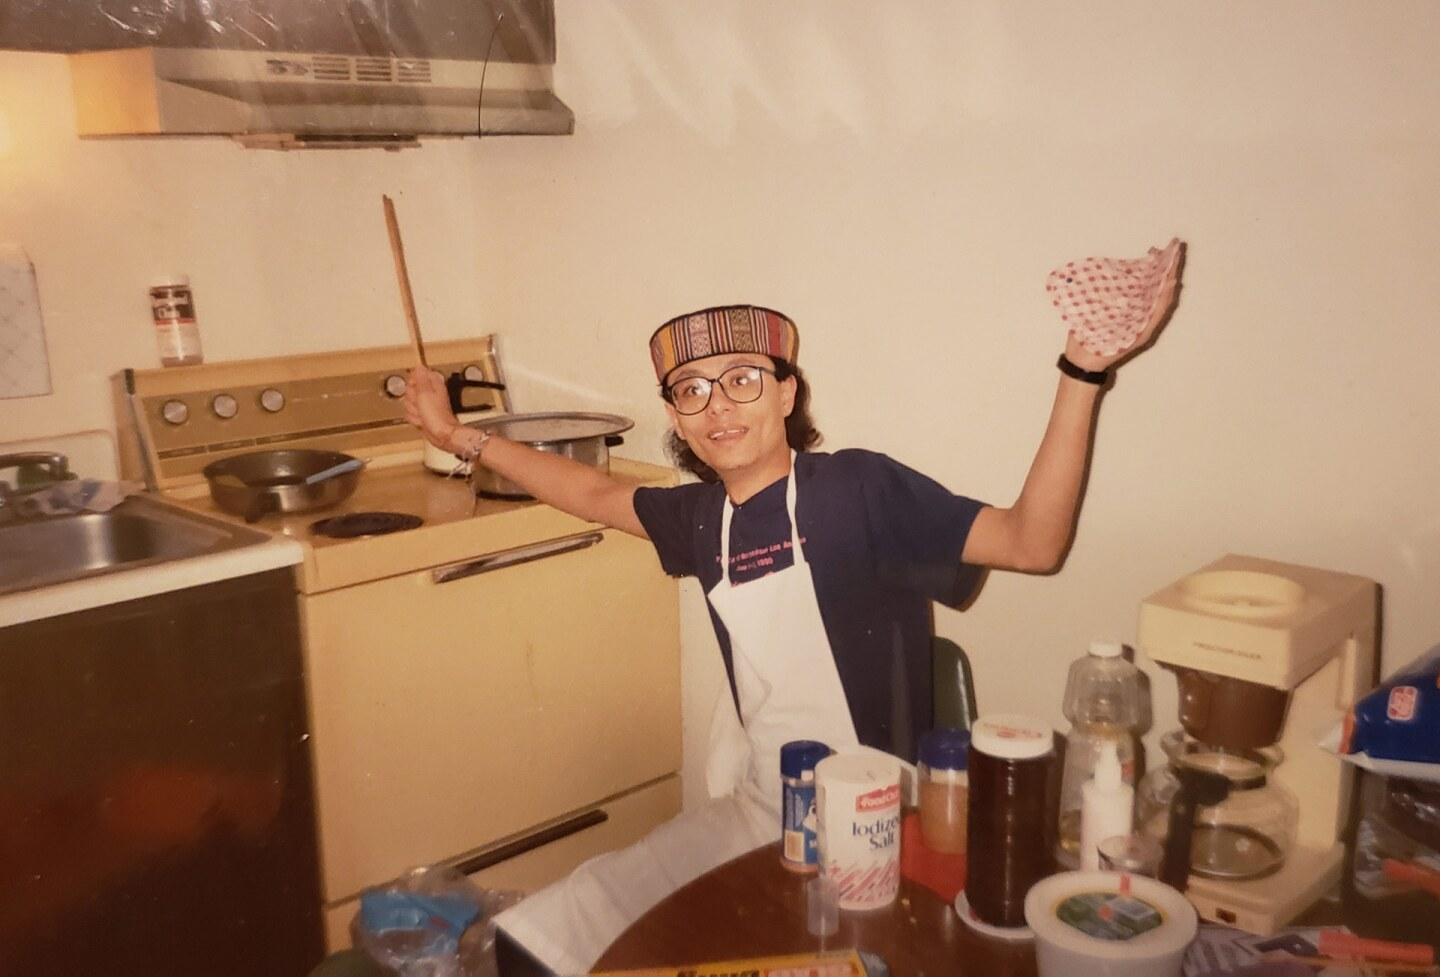 """Anil Shahi learns to cook during his college days. """"I have become a prolific cook now - I love learning and making ethnic recipes from all over the world,"""" Shahi shared. 